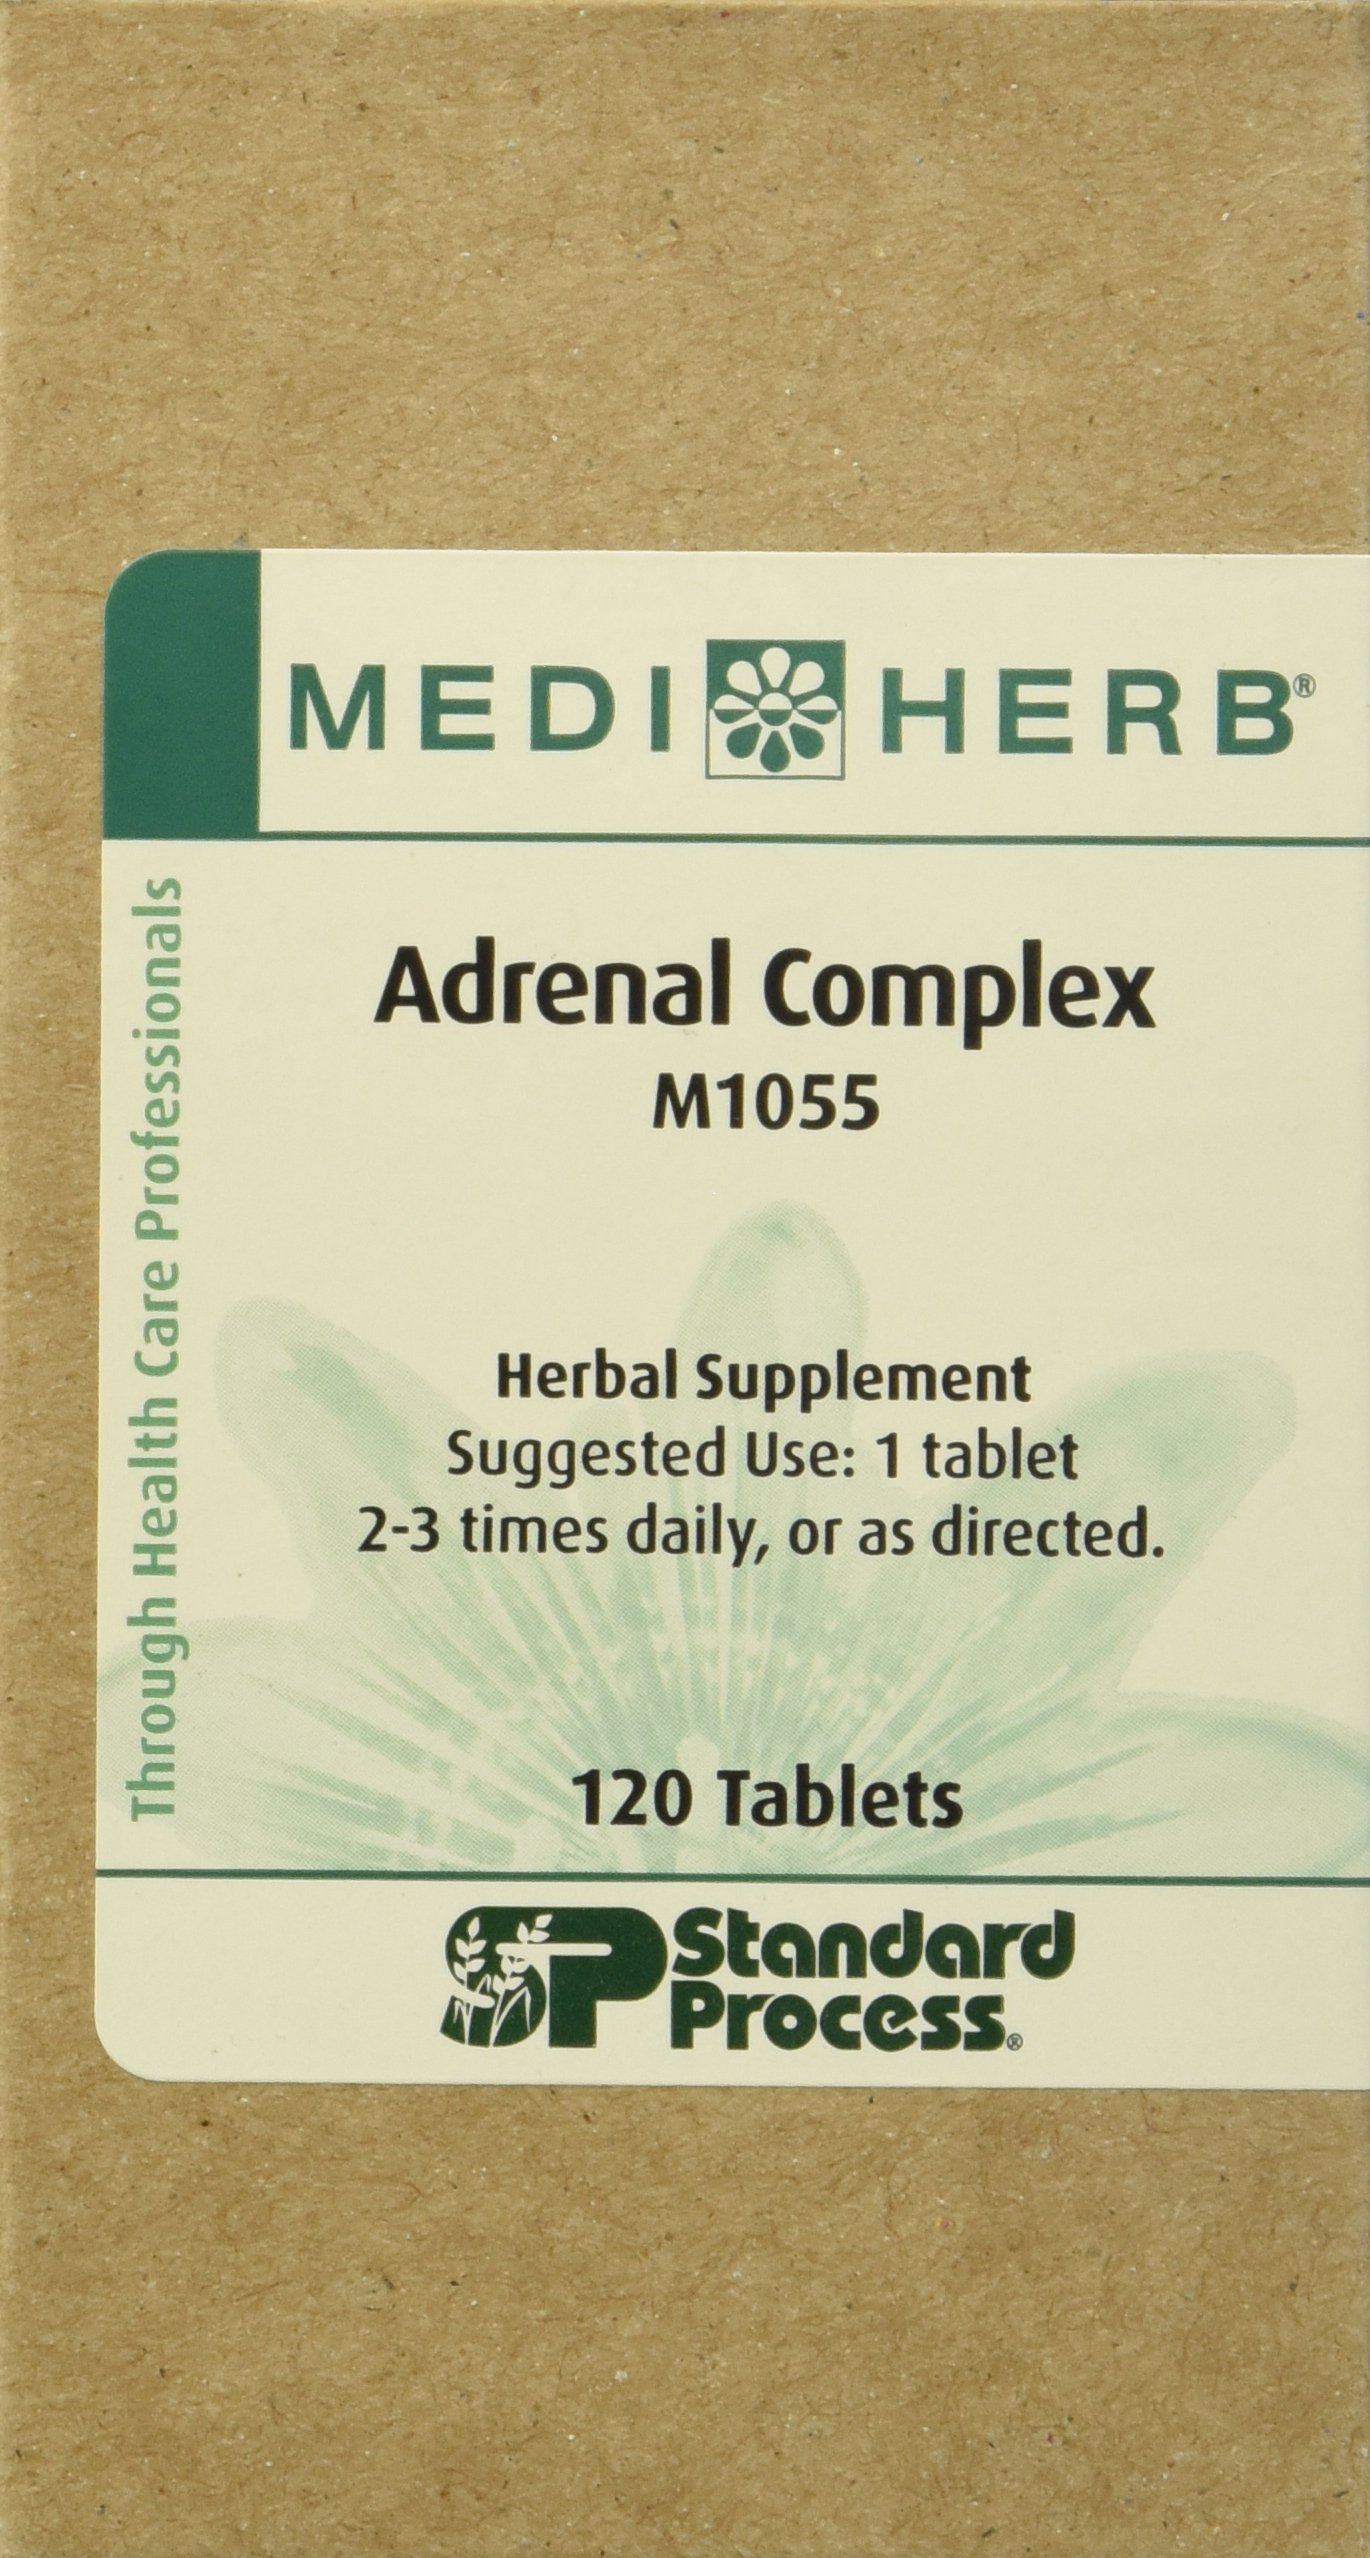 Adrenal Complex By Medi Herb 120 Tablets by Mediherb (Image #1)